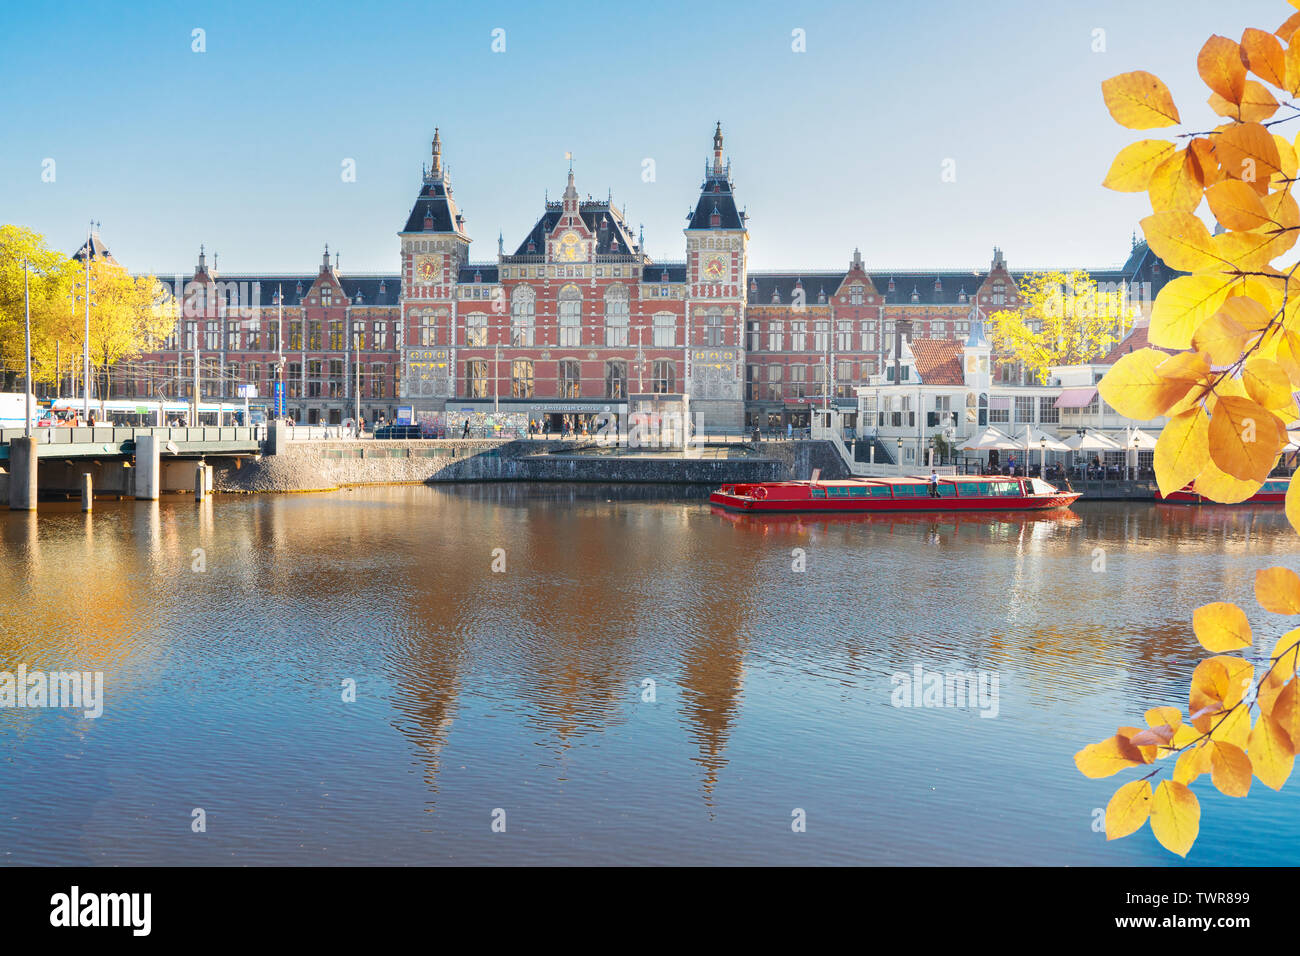 famous cityscape with central railway station and old town canal in Amsterdam, Holland at fall - Stock Image